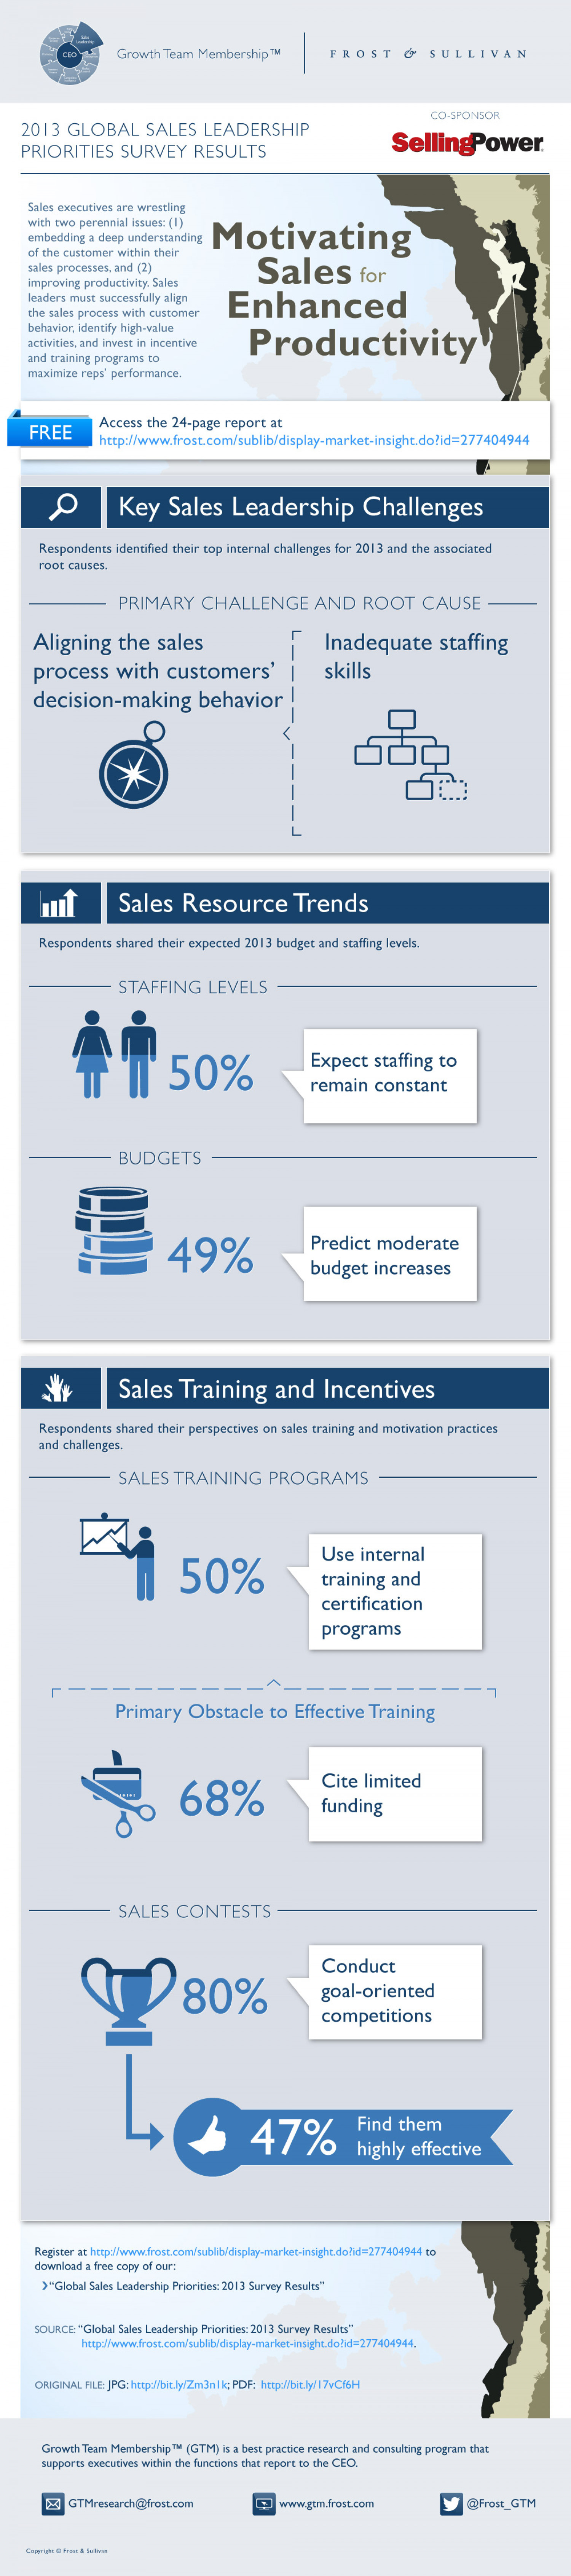 Motivating Sales for Enhanced Productivity Infographic